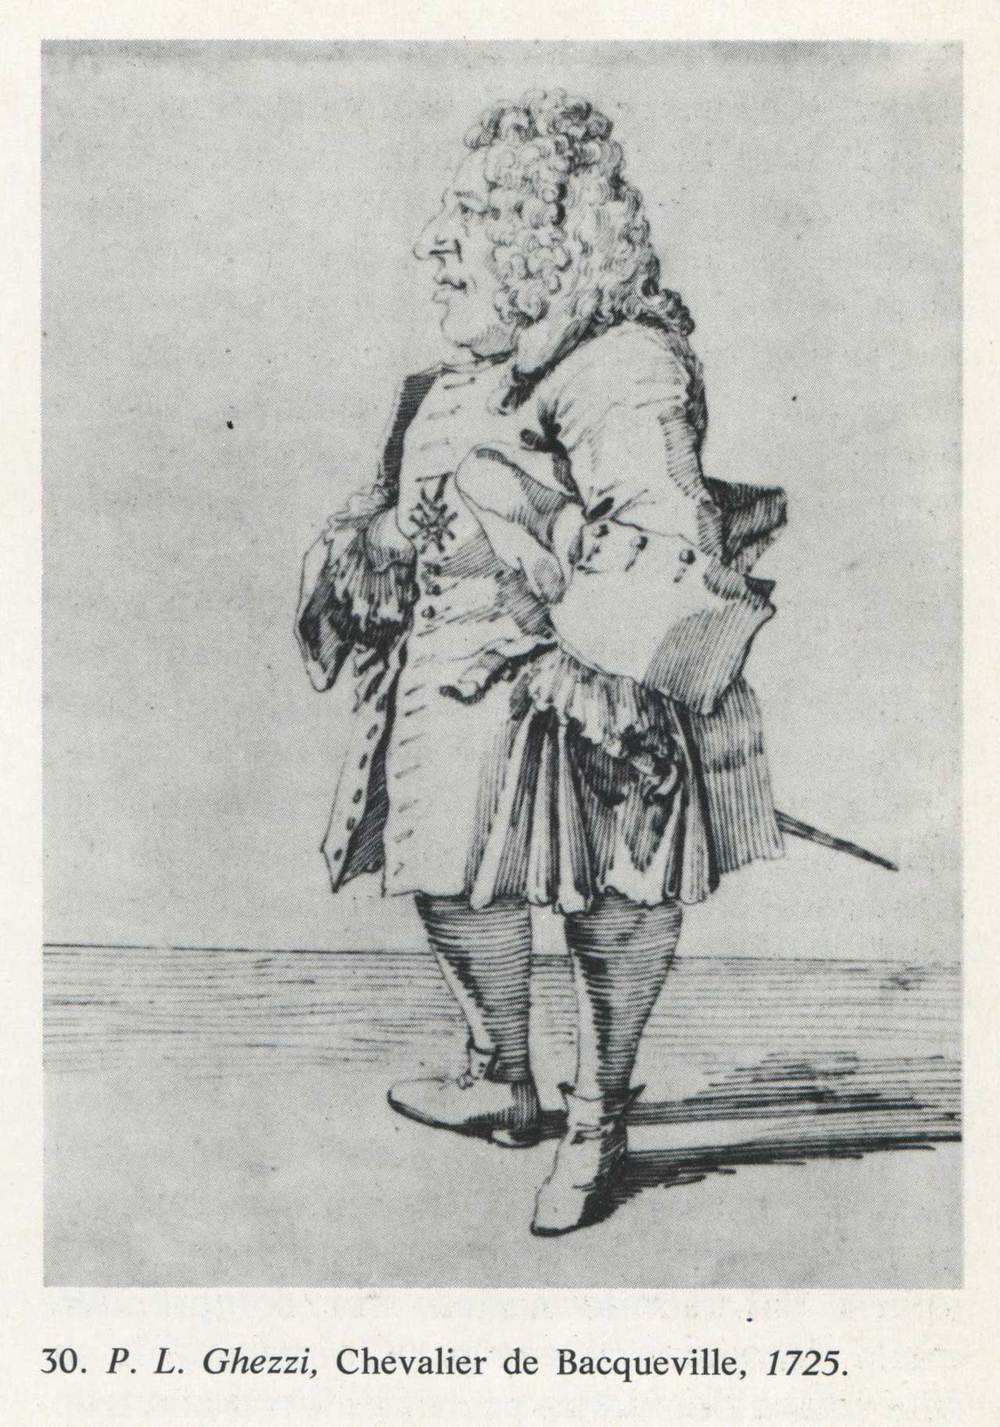 Caricature of Chevalier de Baqueville